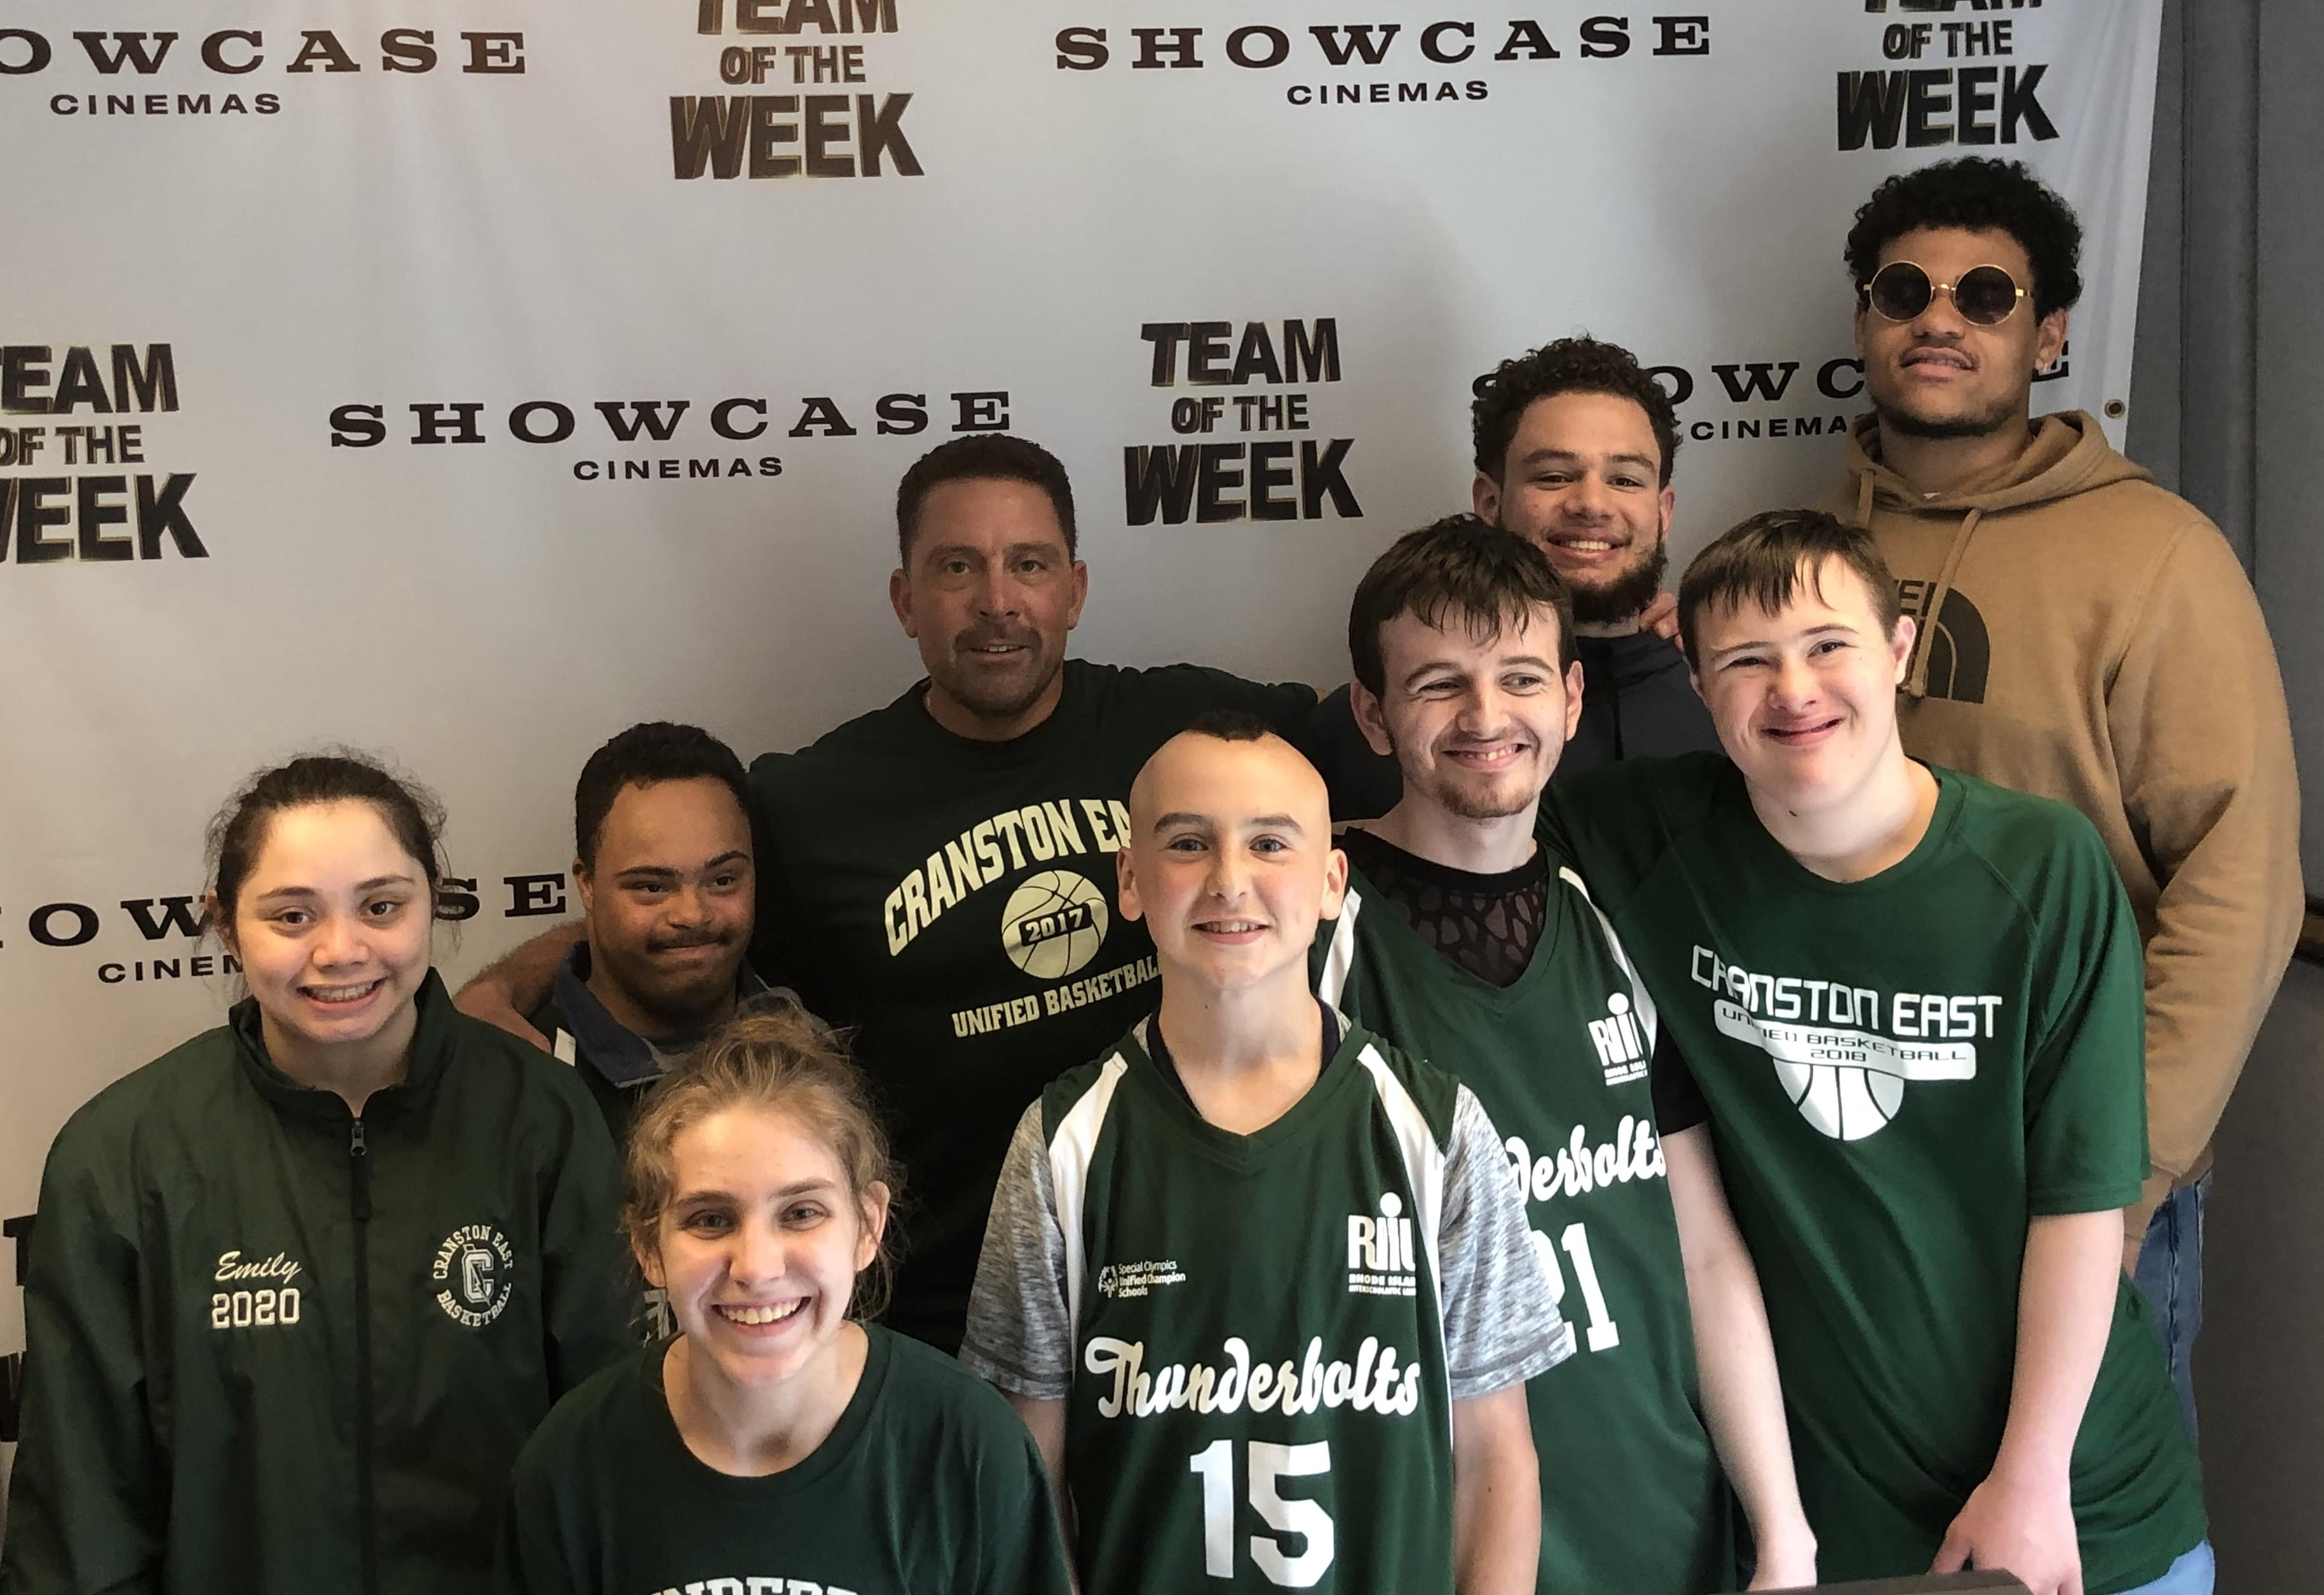 Cranston East Unified Basketball Team